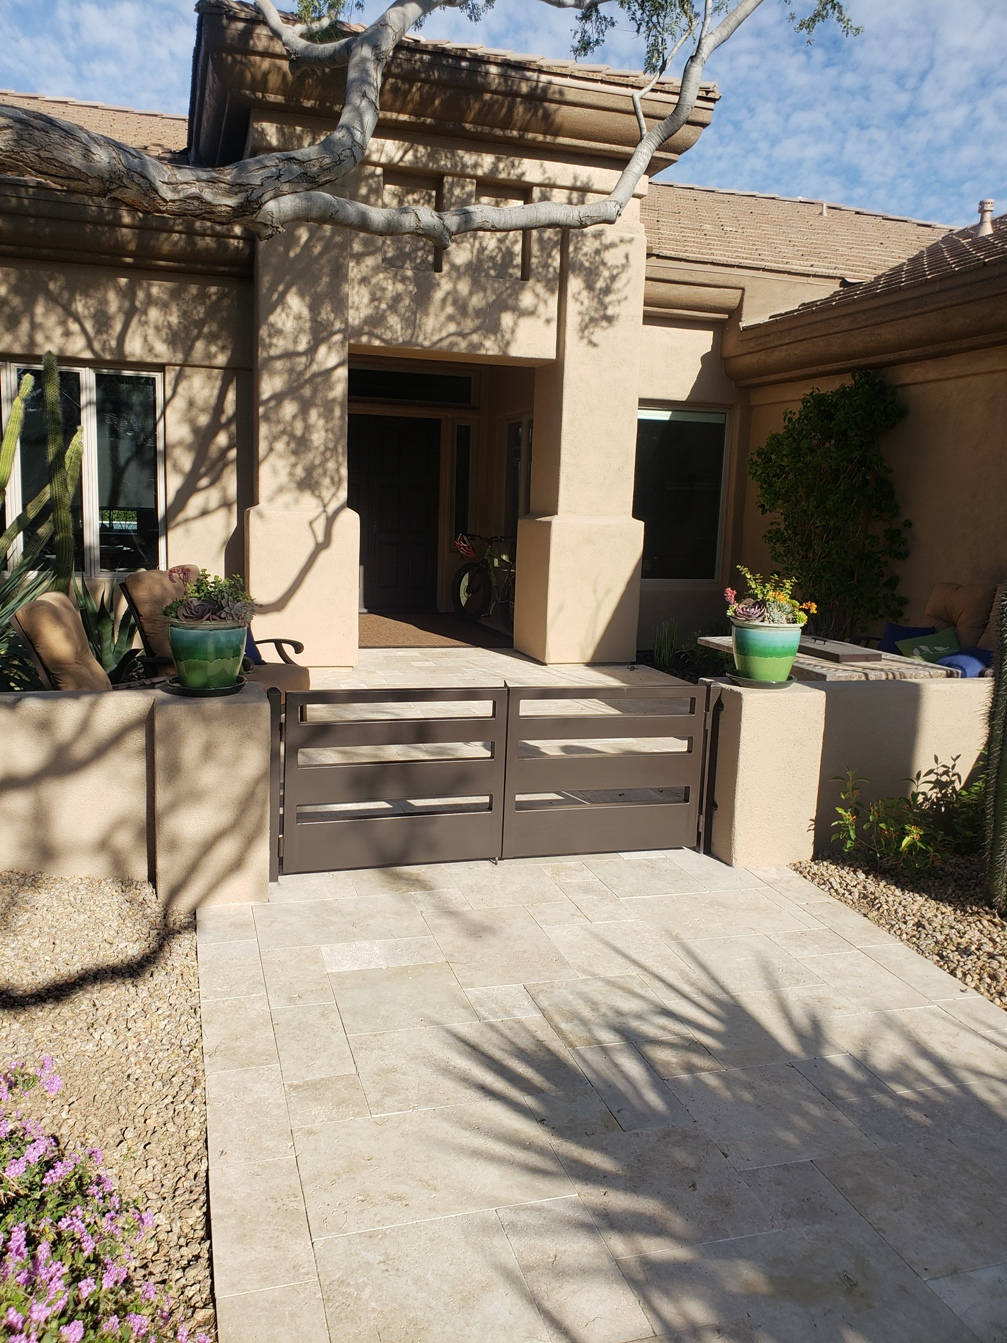 Courtyard looking out of date? Take heart, Scottsdale, travertine pavers are like a magic wand. Presto, chango!